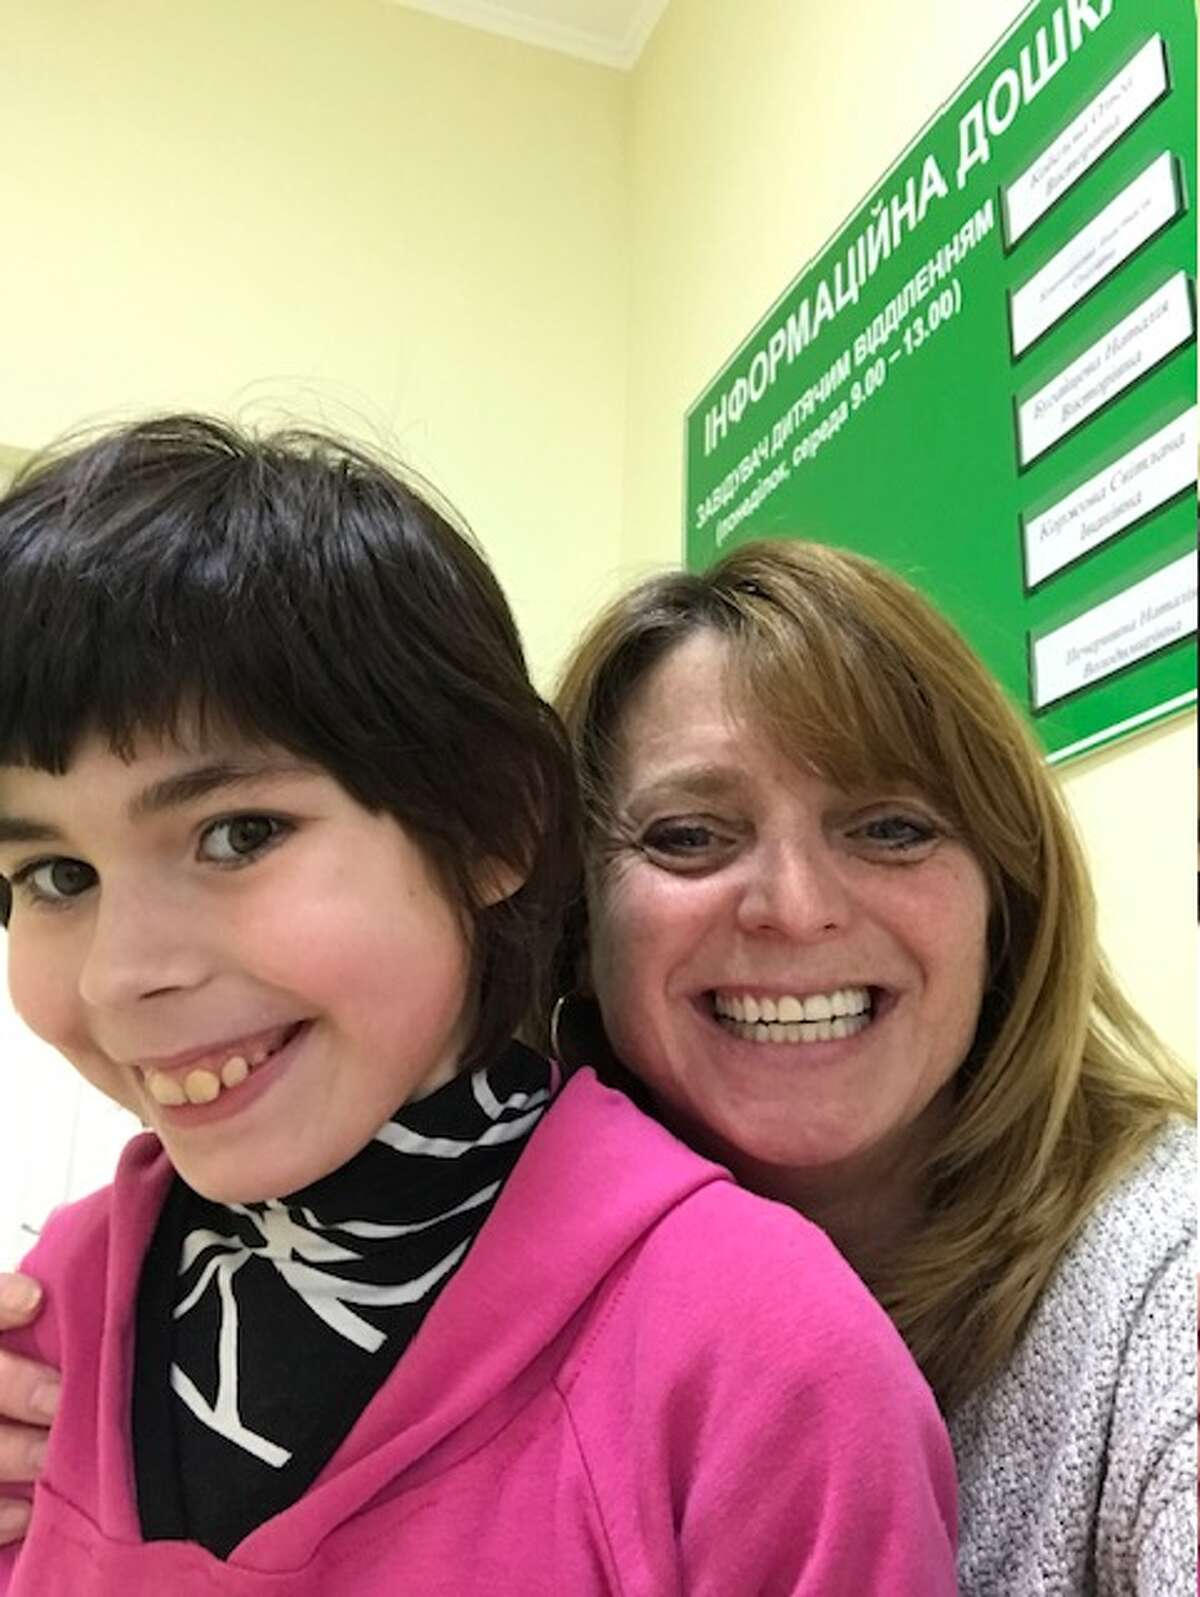 """Myroslava """"Mira"""" Chumakova, left, now 10, with Theresa Grimes of Albany, her soon-to-be adoptive mother pictured in Ukraine during a visit in February 2020. Grimes went to pick Mira up in mid-March 2020, but returned to the U.S. without her due to travel restrictions caused by COVID-19. (Provided photo)"""